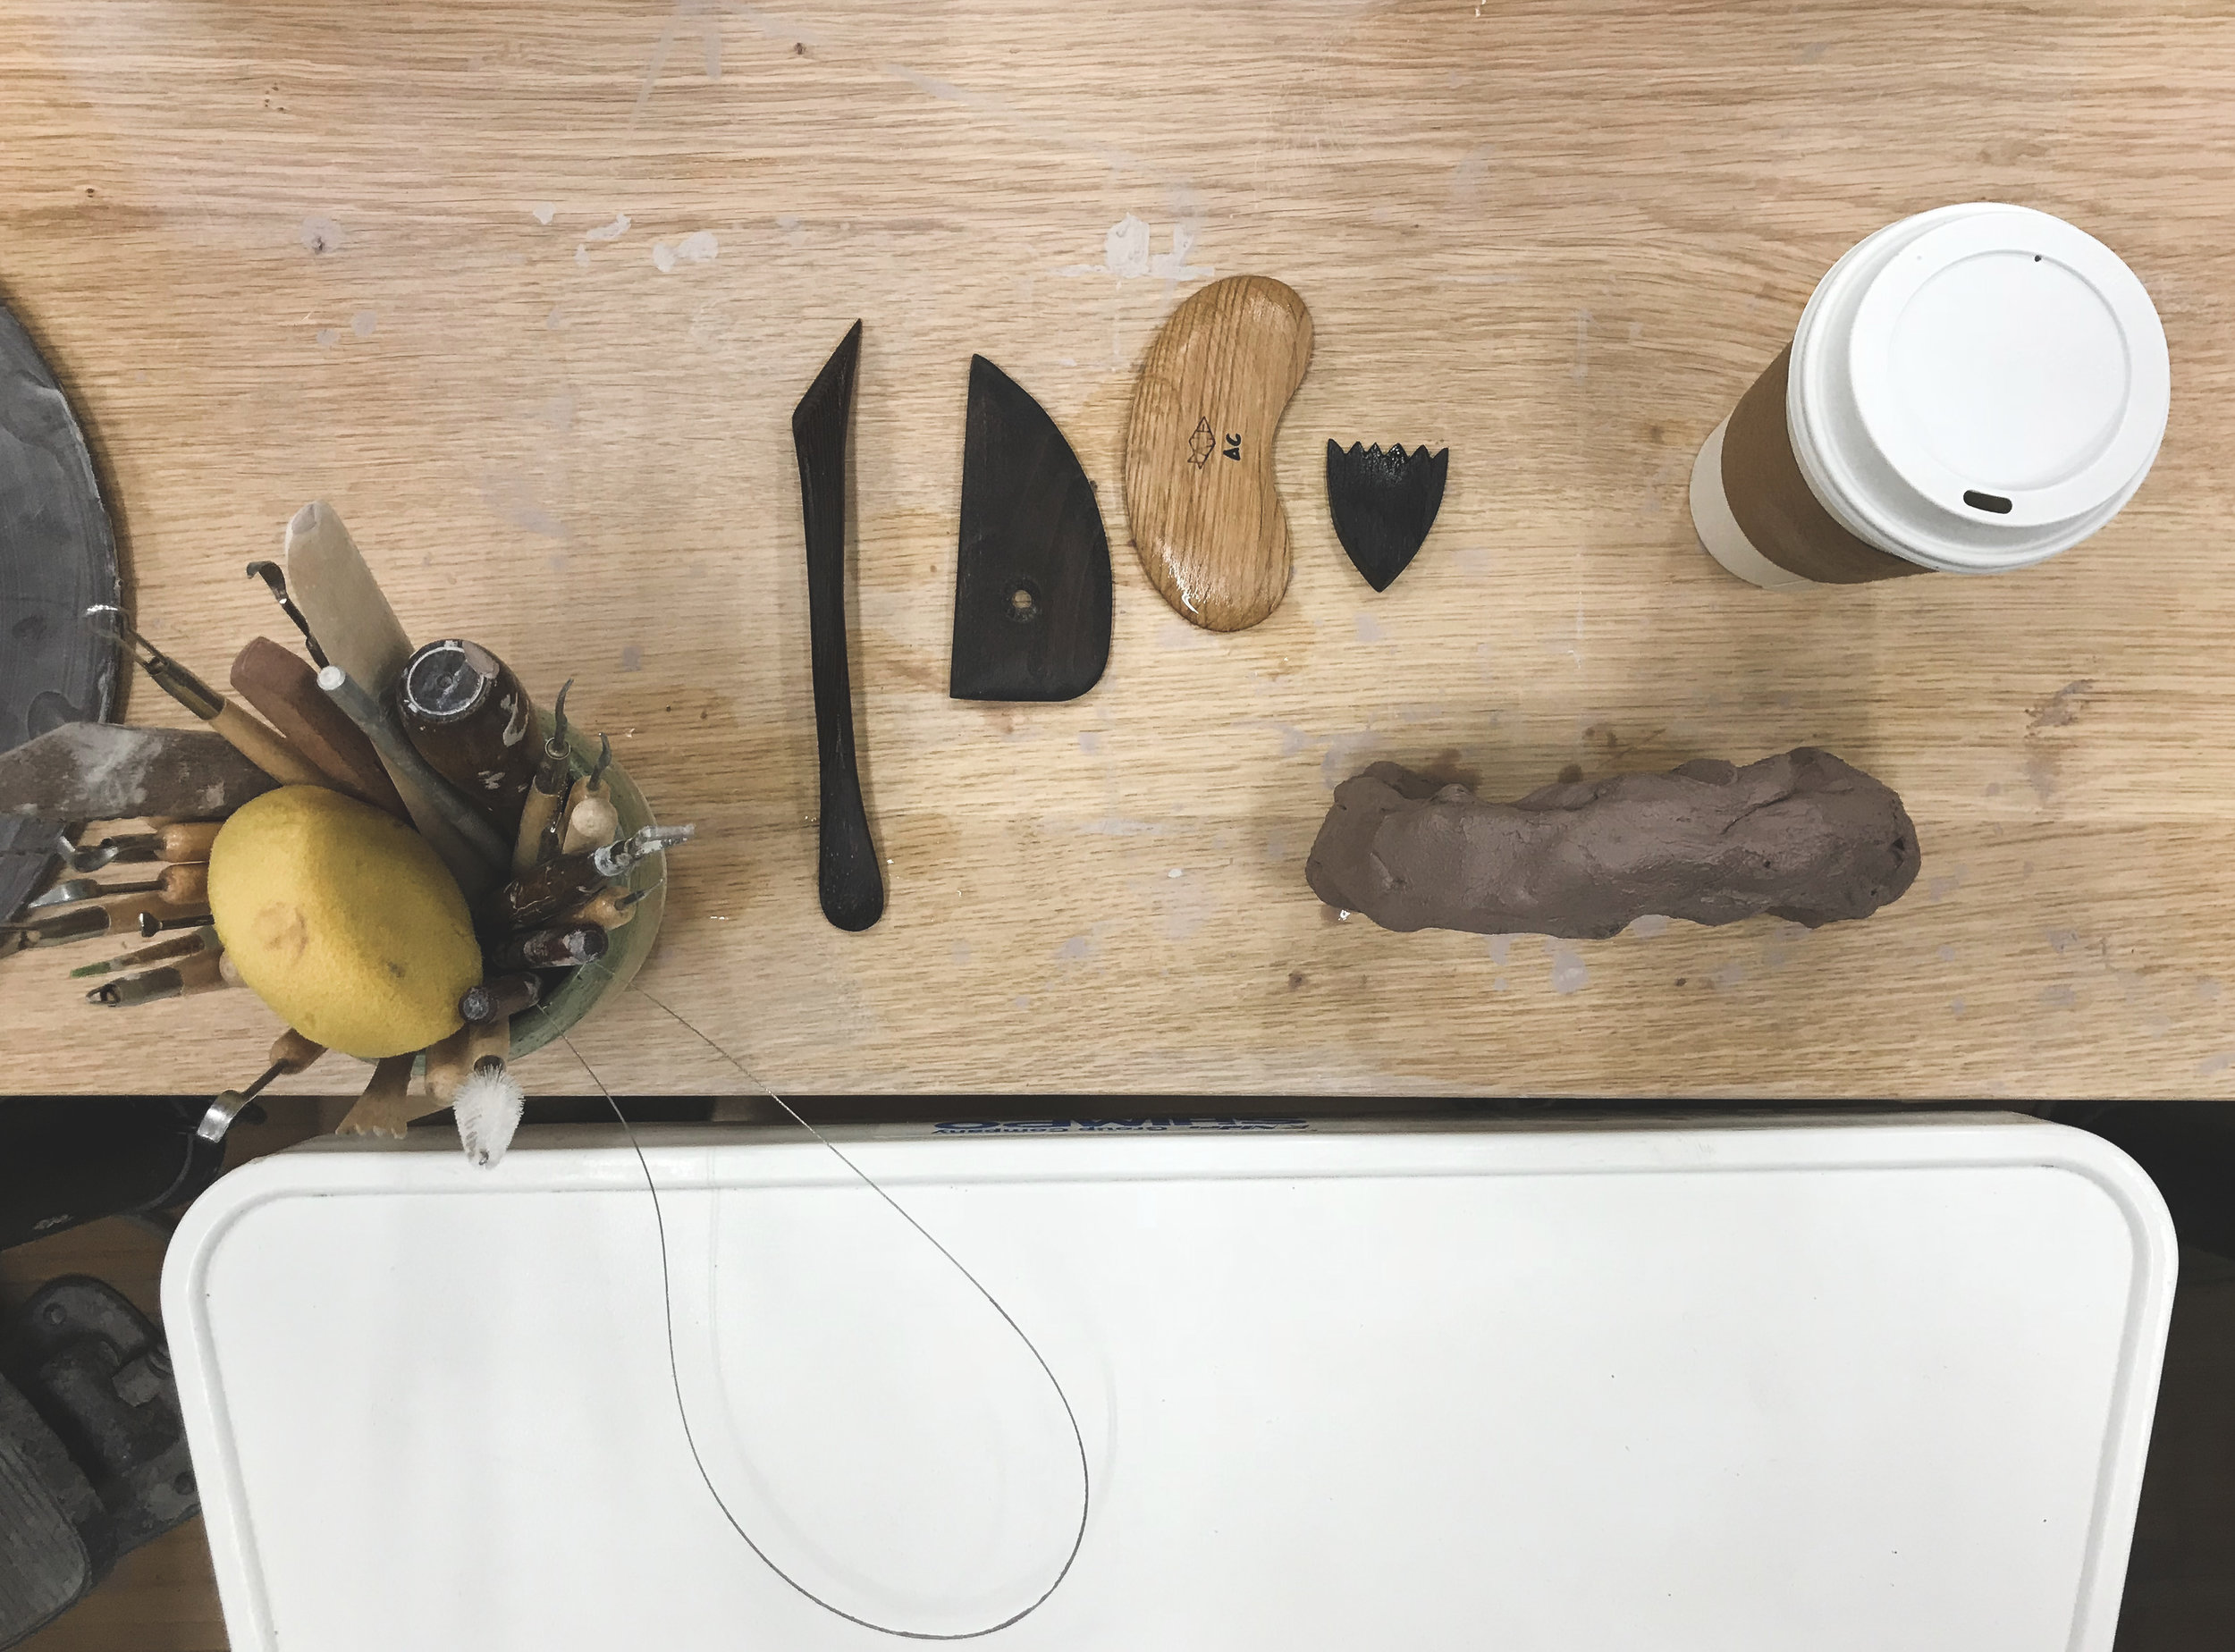 Tools in their jar. Tools washed clean and ready to go again. Green tea. And a lump of clay that didn't work out. It's drying in this form, and I'll rewedge it to start again as another form for another day.